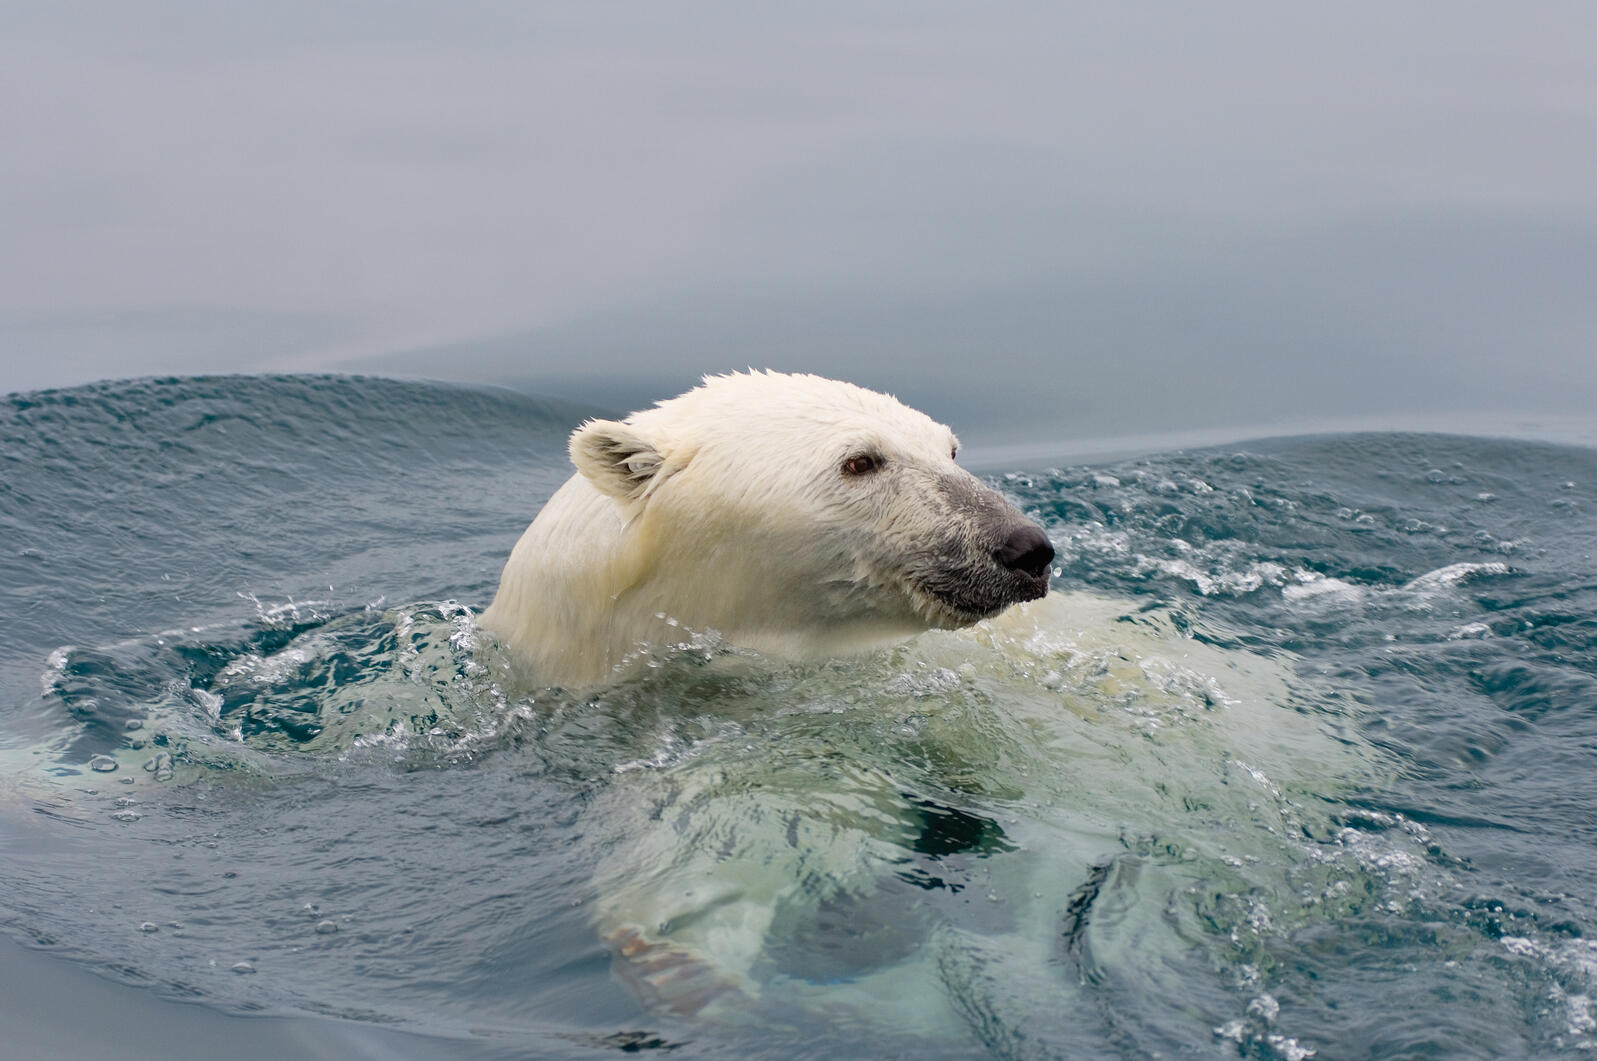 Although polar bears are superb swimmers, paddling in open water for too long can make them vulnerable to exhaustion and cold, rough seas. In 2004, 27 bears drowned after a severe storm. Steven Kazlowski/Left Eye Pro